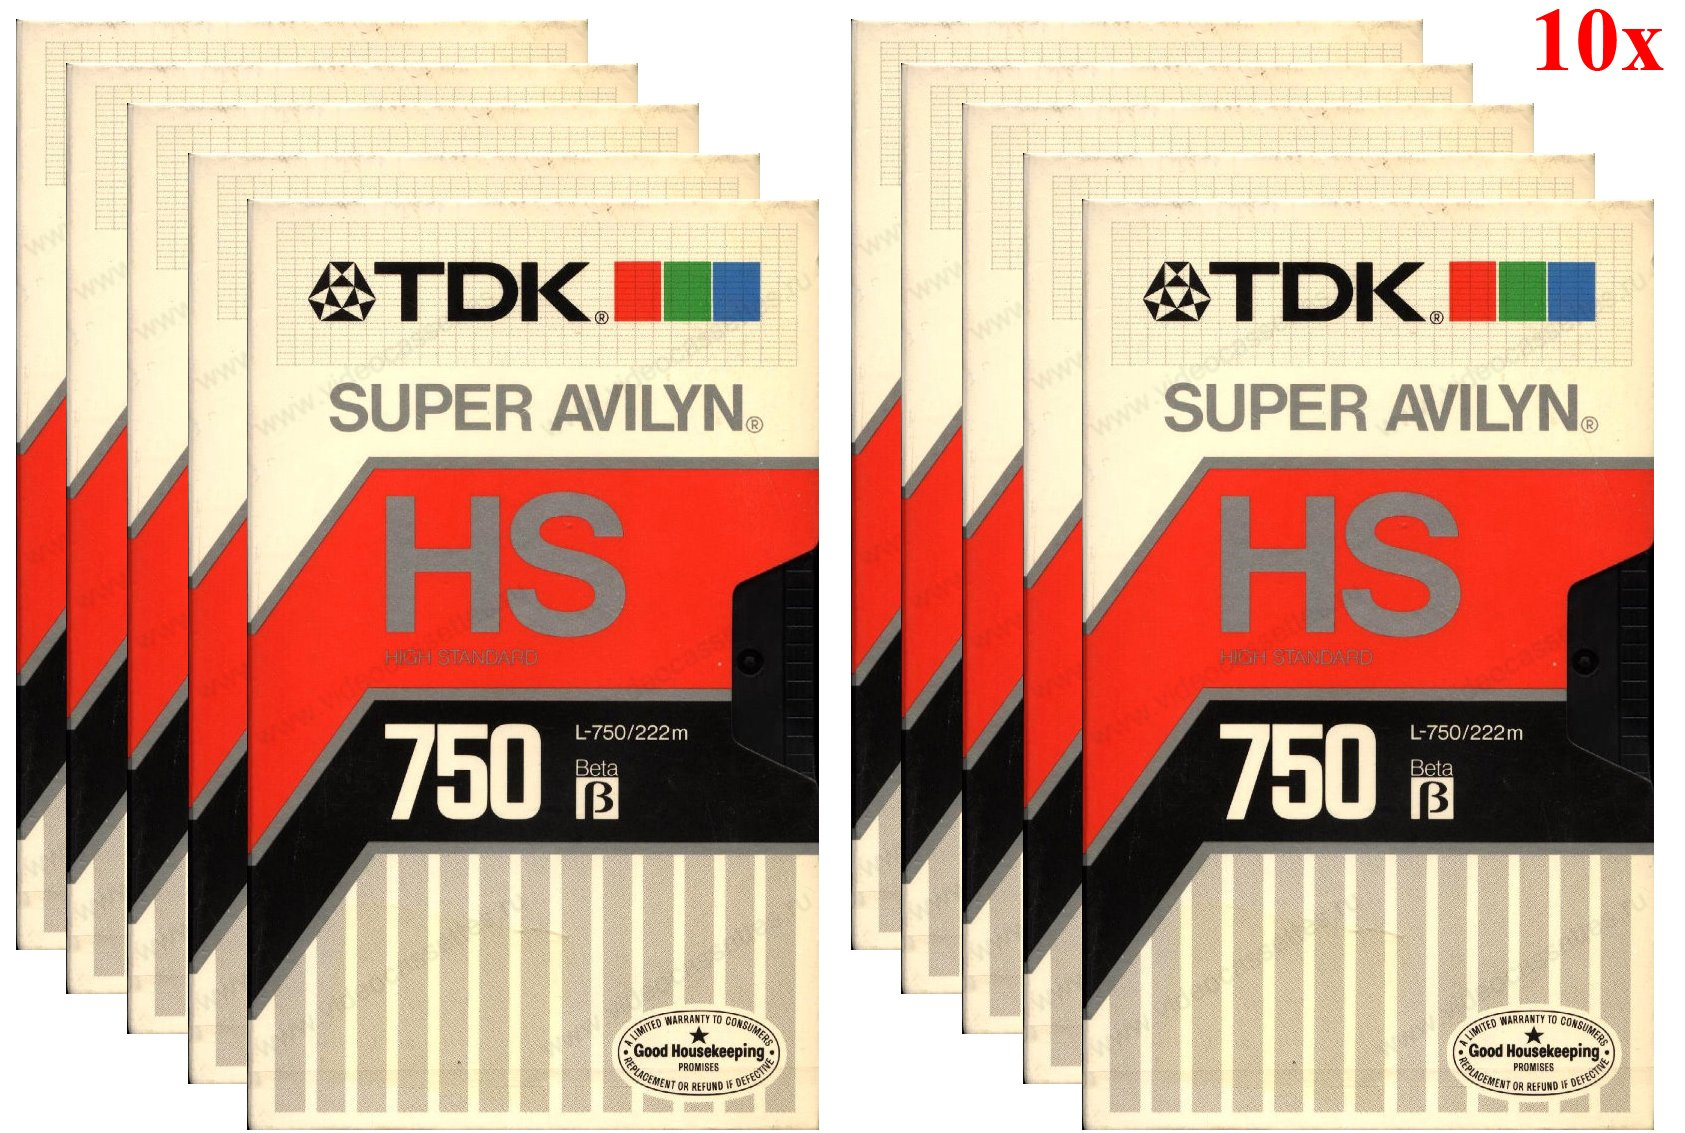 TDK L-750HS Beta Video Cassette Super Avilyn High Standard Tape (10-Pack) by TDK